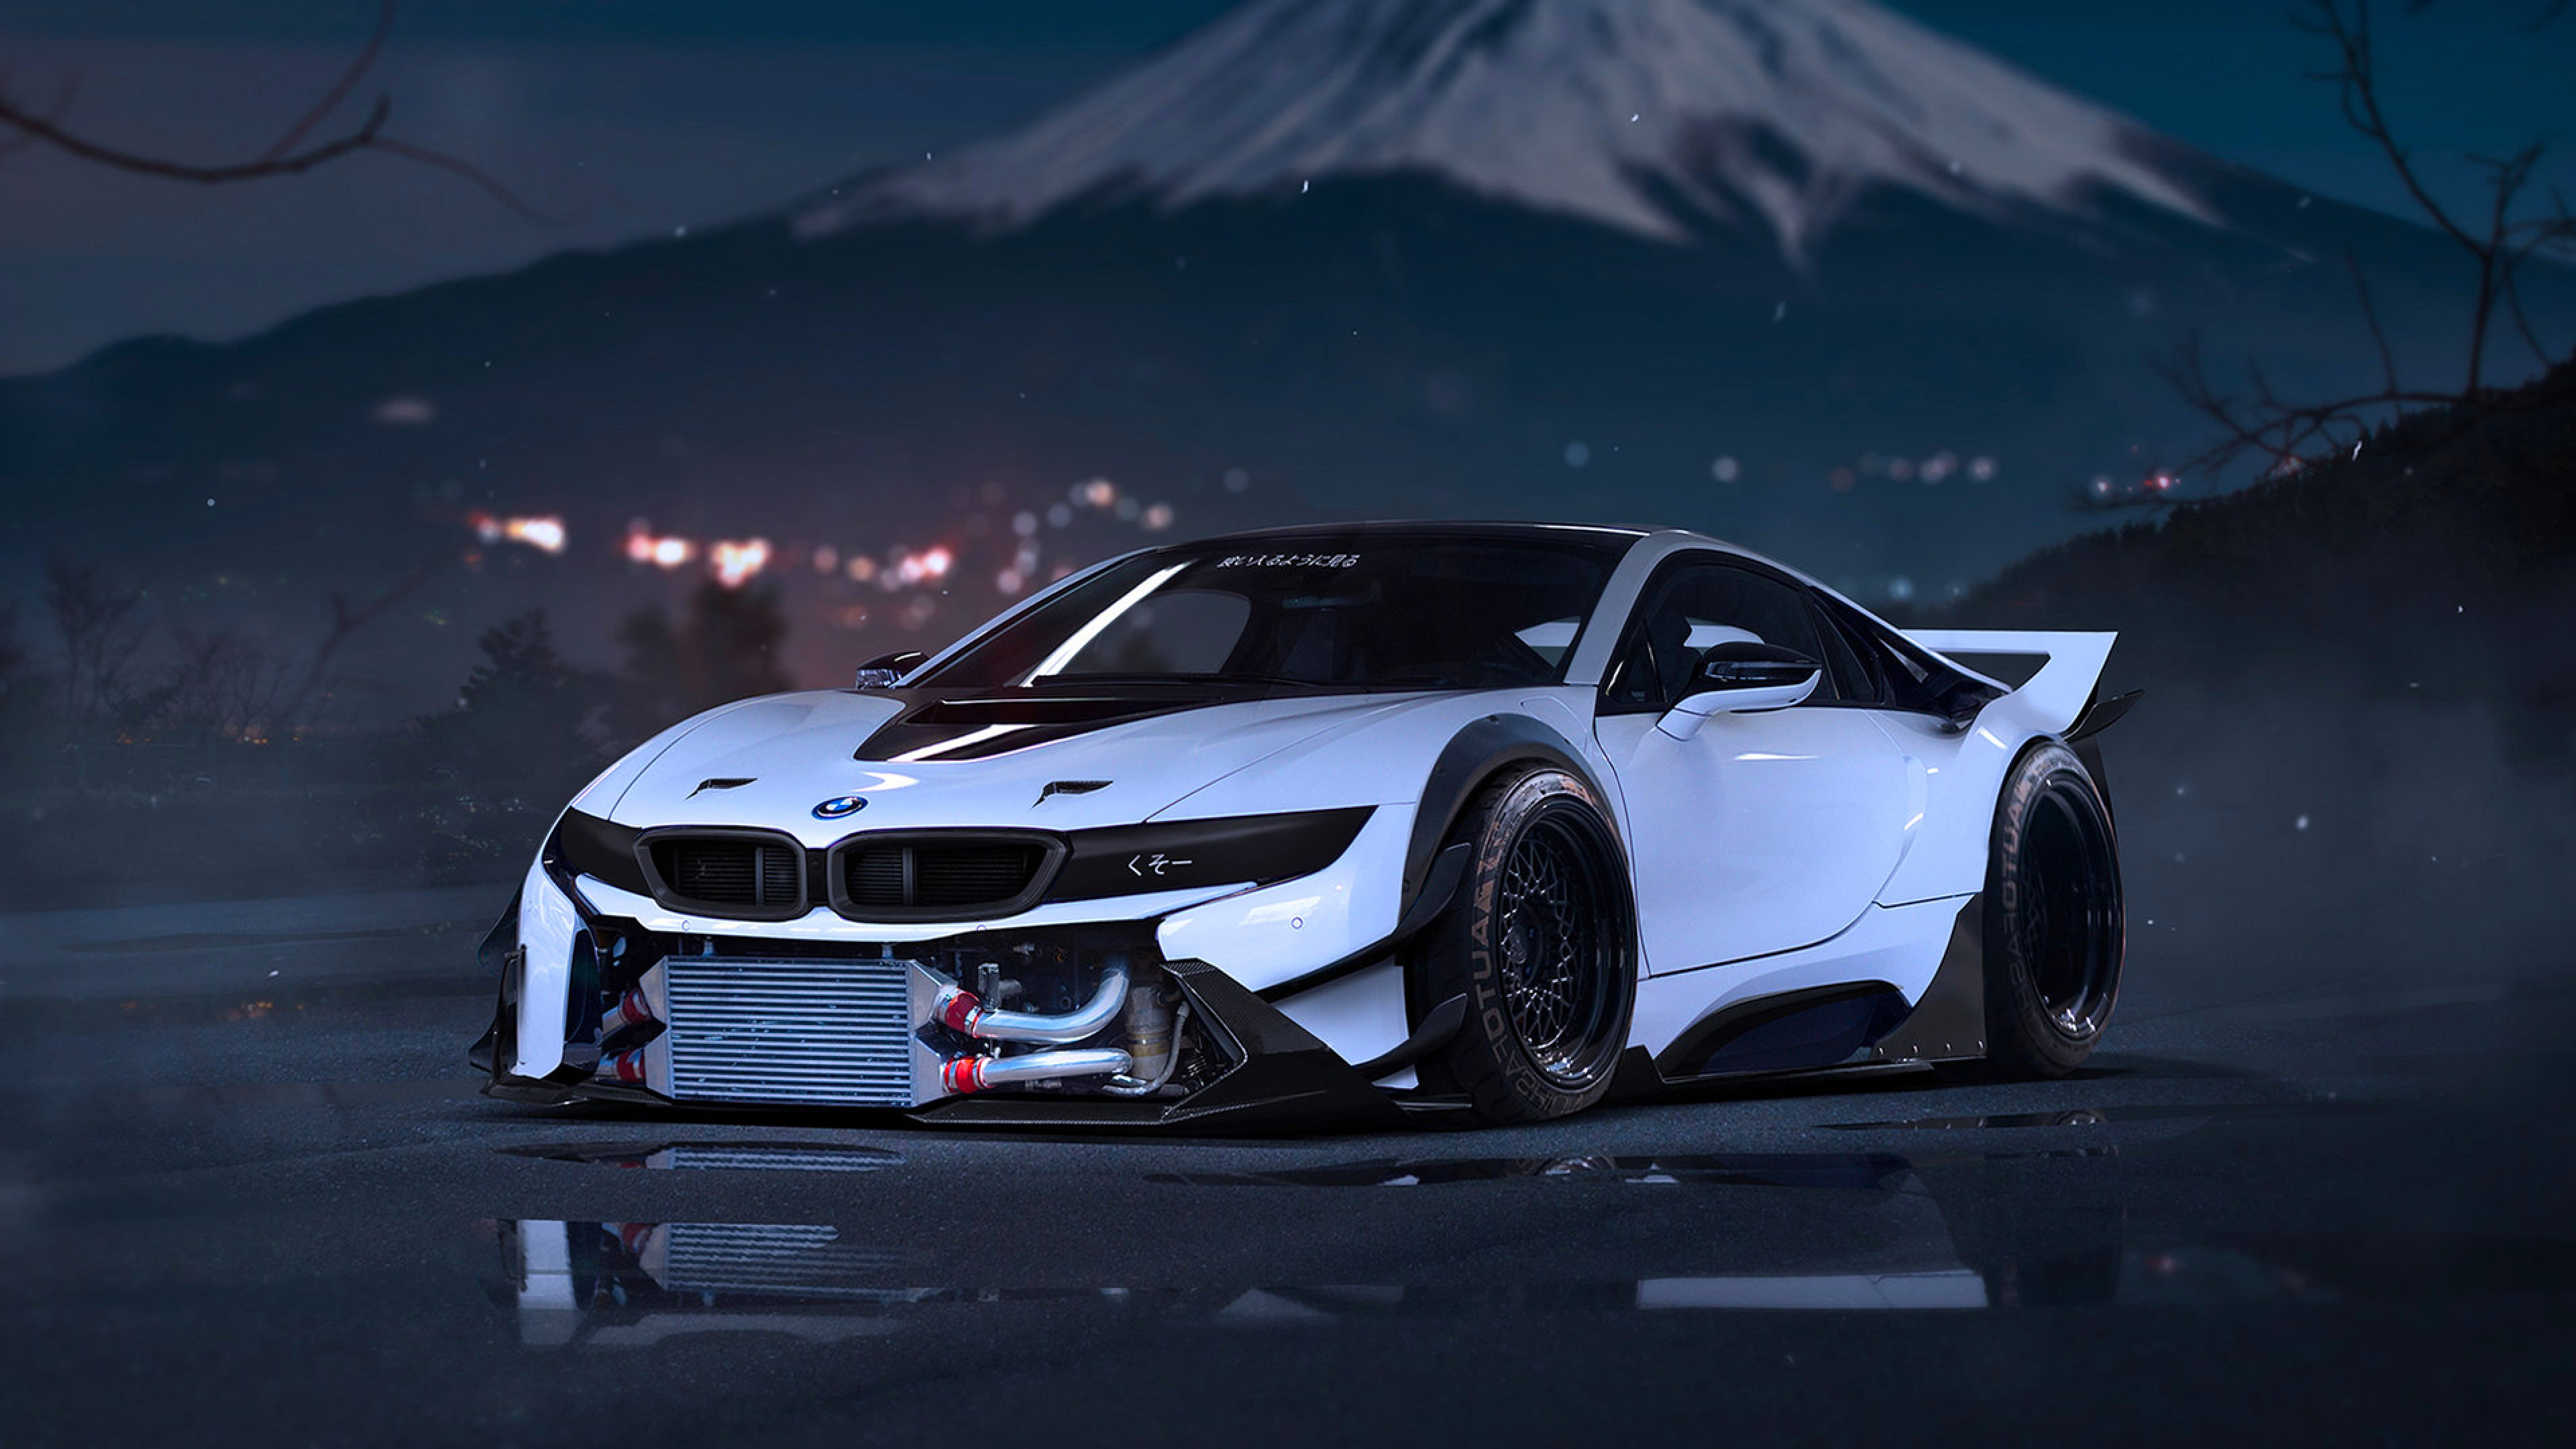 Bmw I8 Tuned Wallpaper on 69 porsche 911 engine